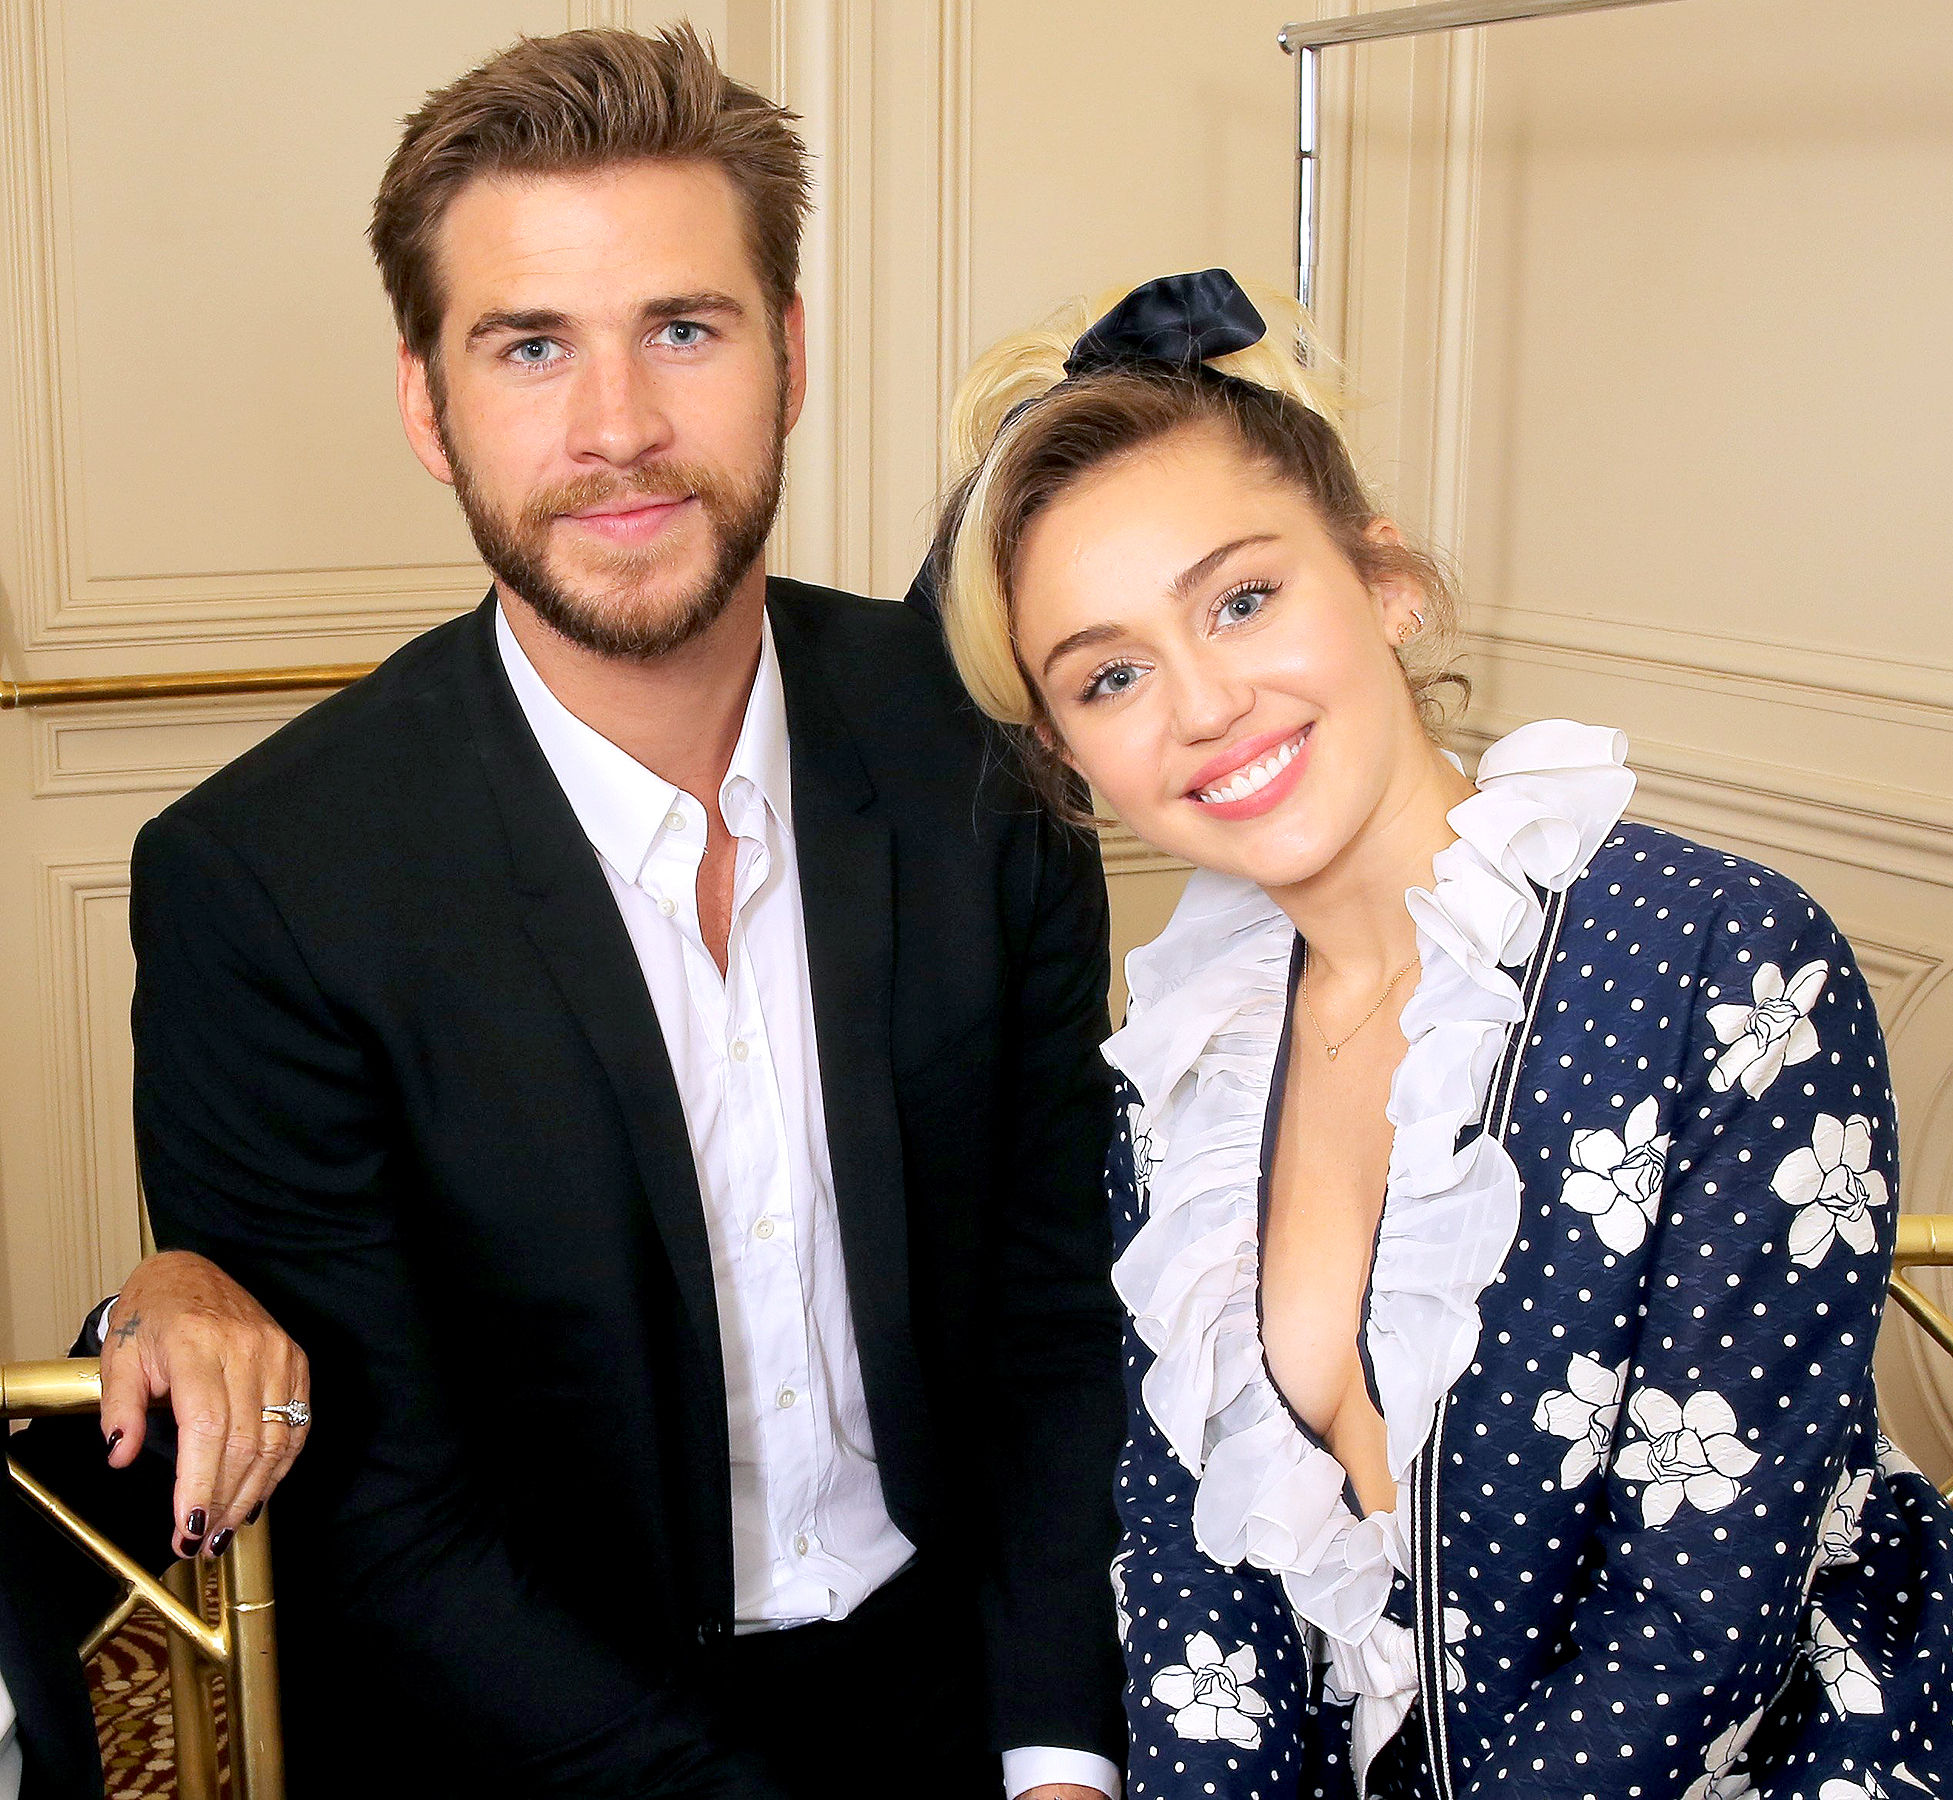 Liam Hemsworth and Miley Cyrus Variety's Power of Women Presented by Lifetime, October 14, 2016.